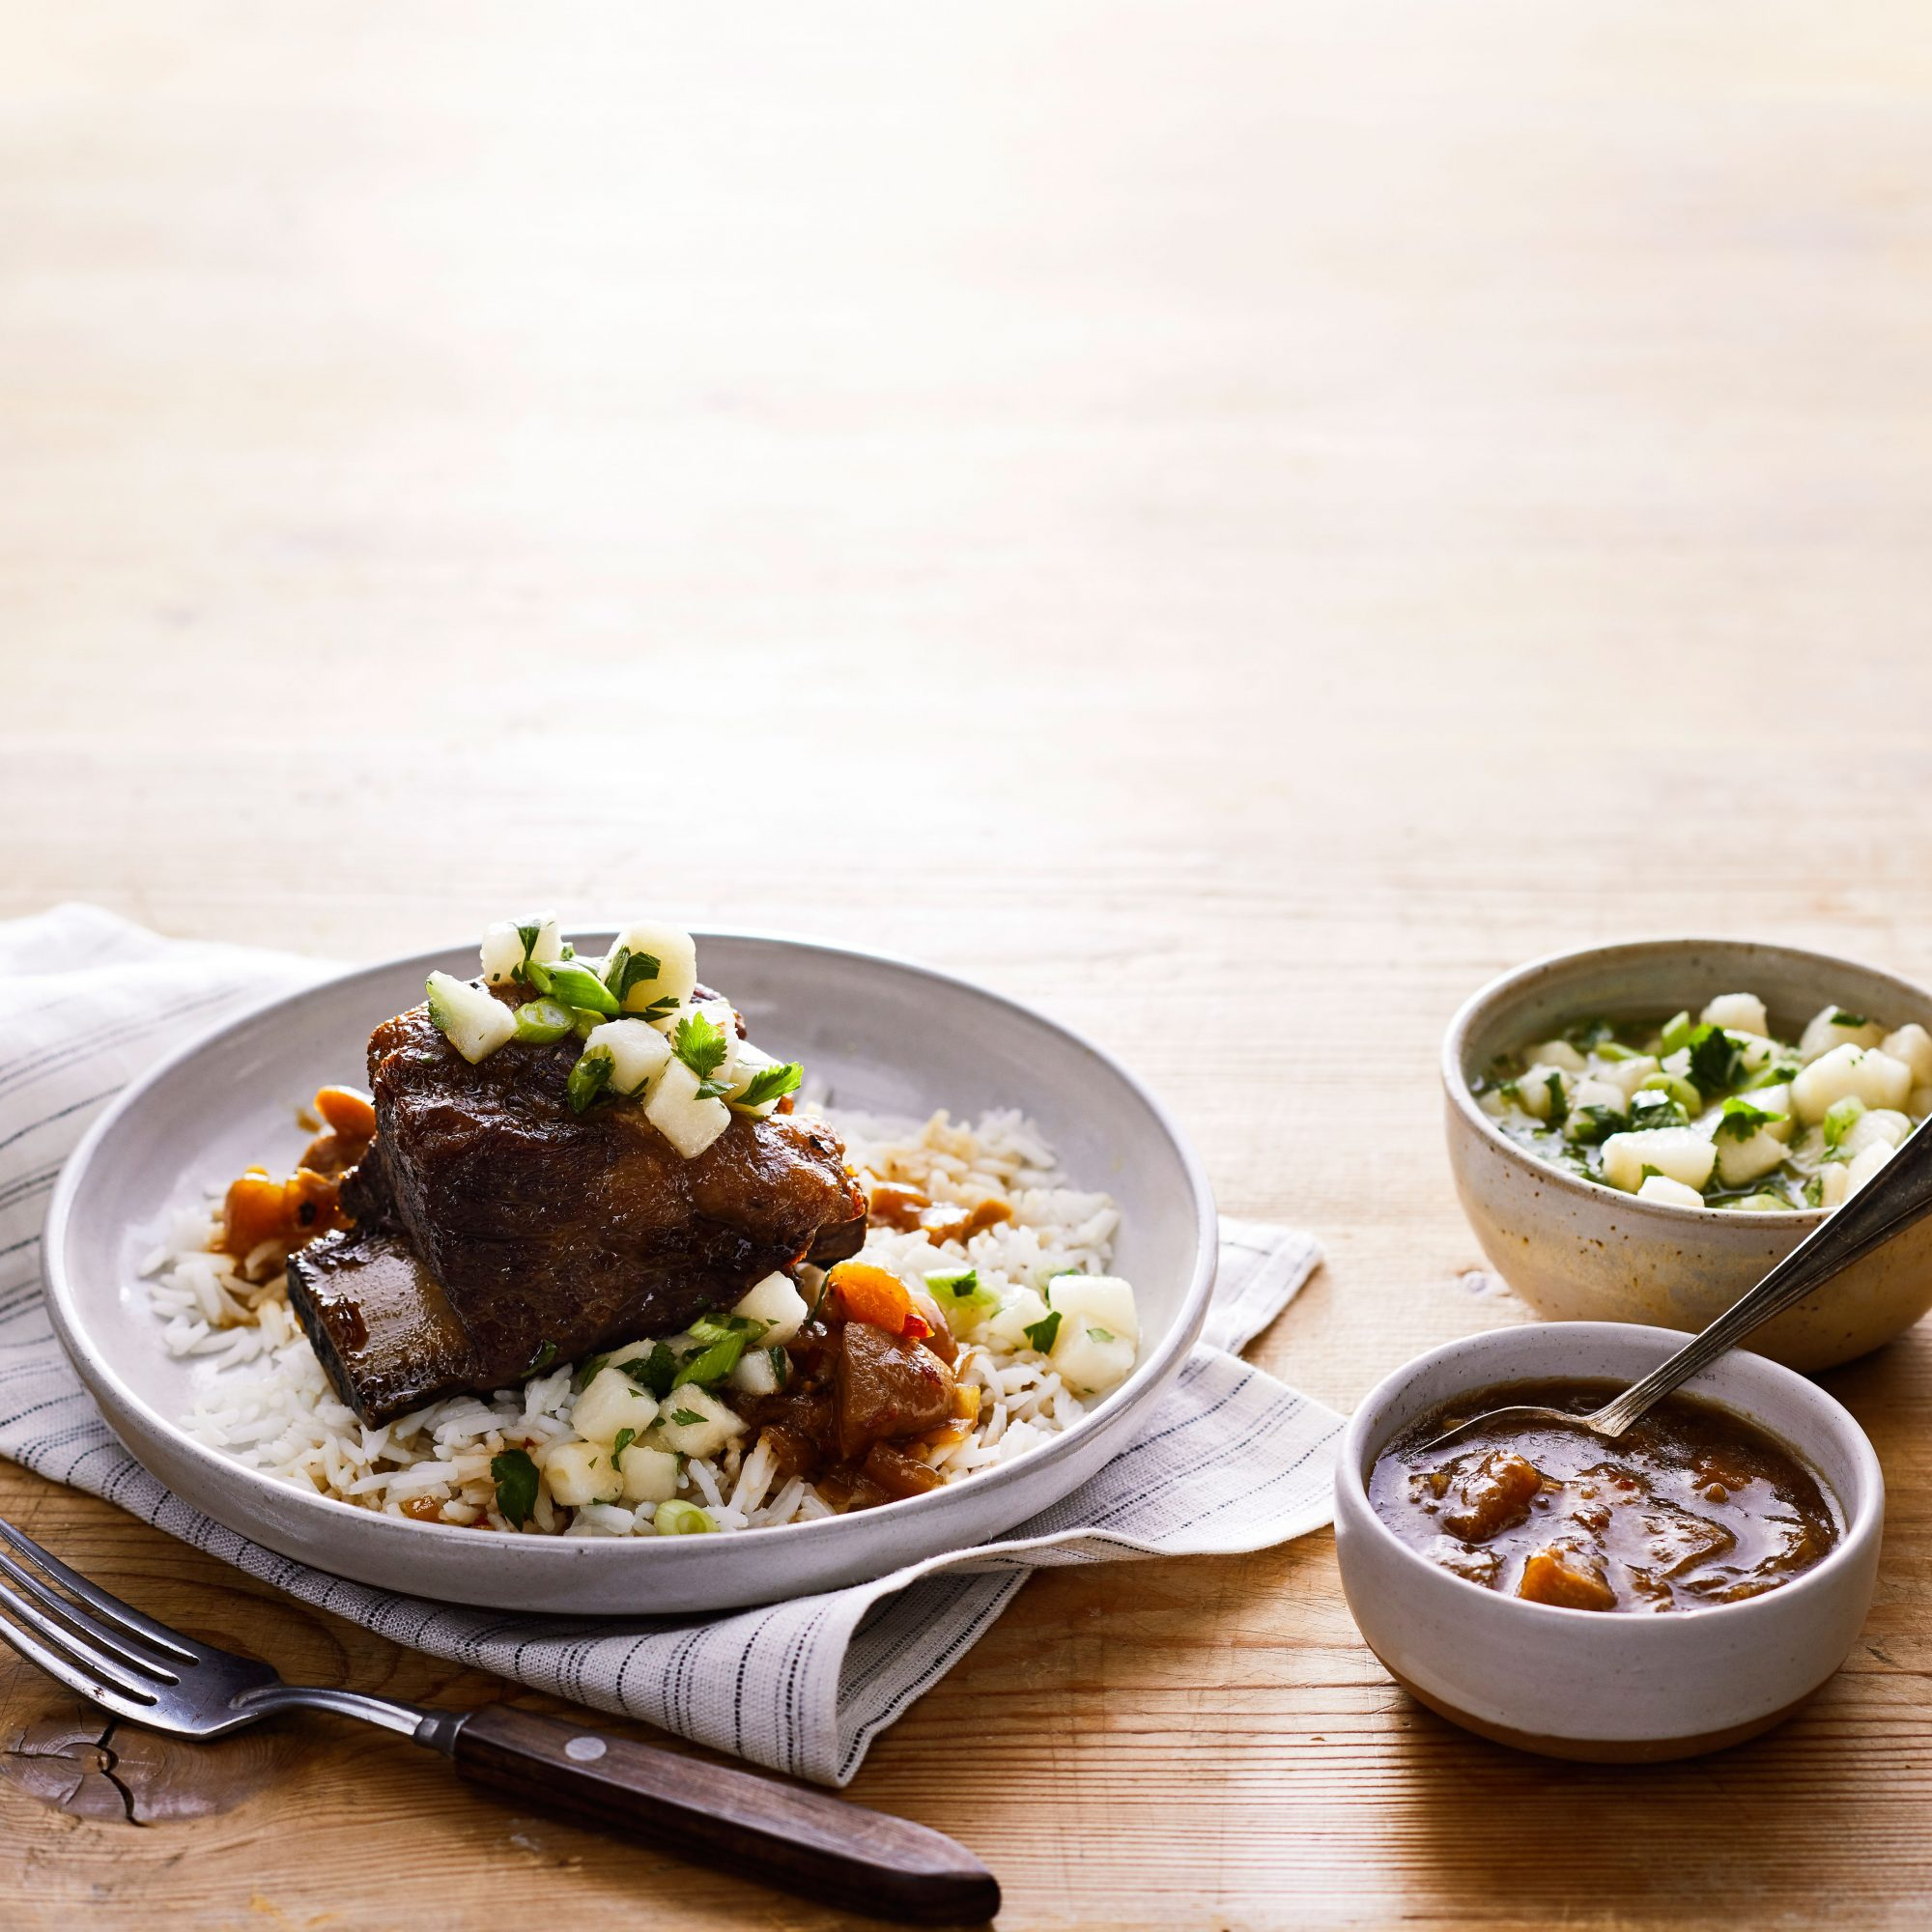 Braised Short Ribs with Pear, Ginger, and Star Anise